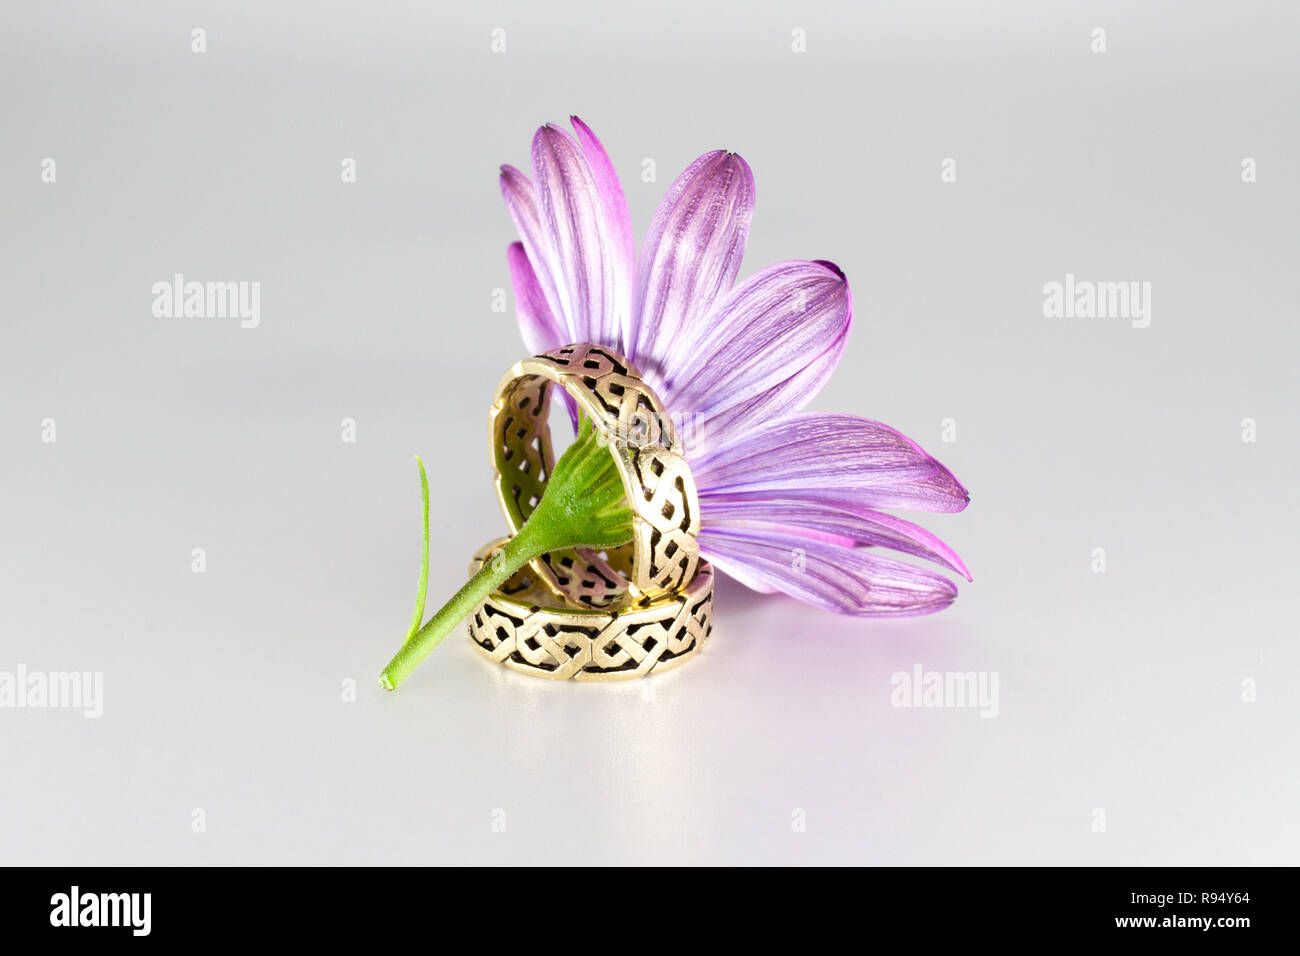 Golden wedding rings with Irish ornaments beside lilac flower - Stock Image